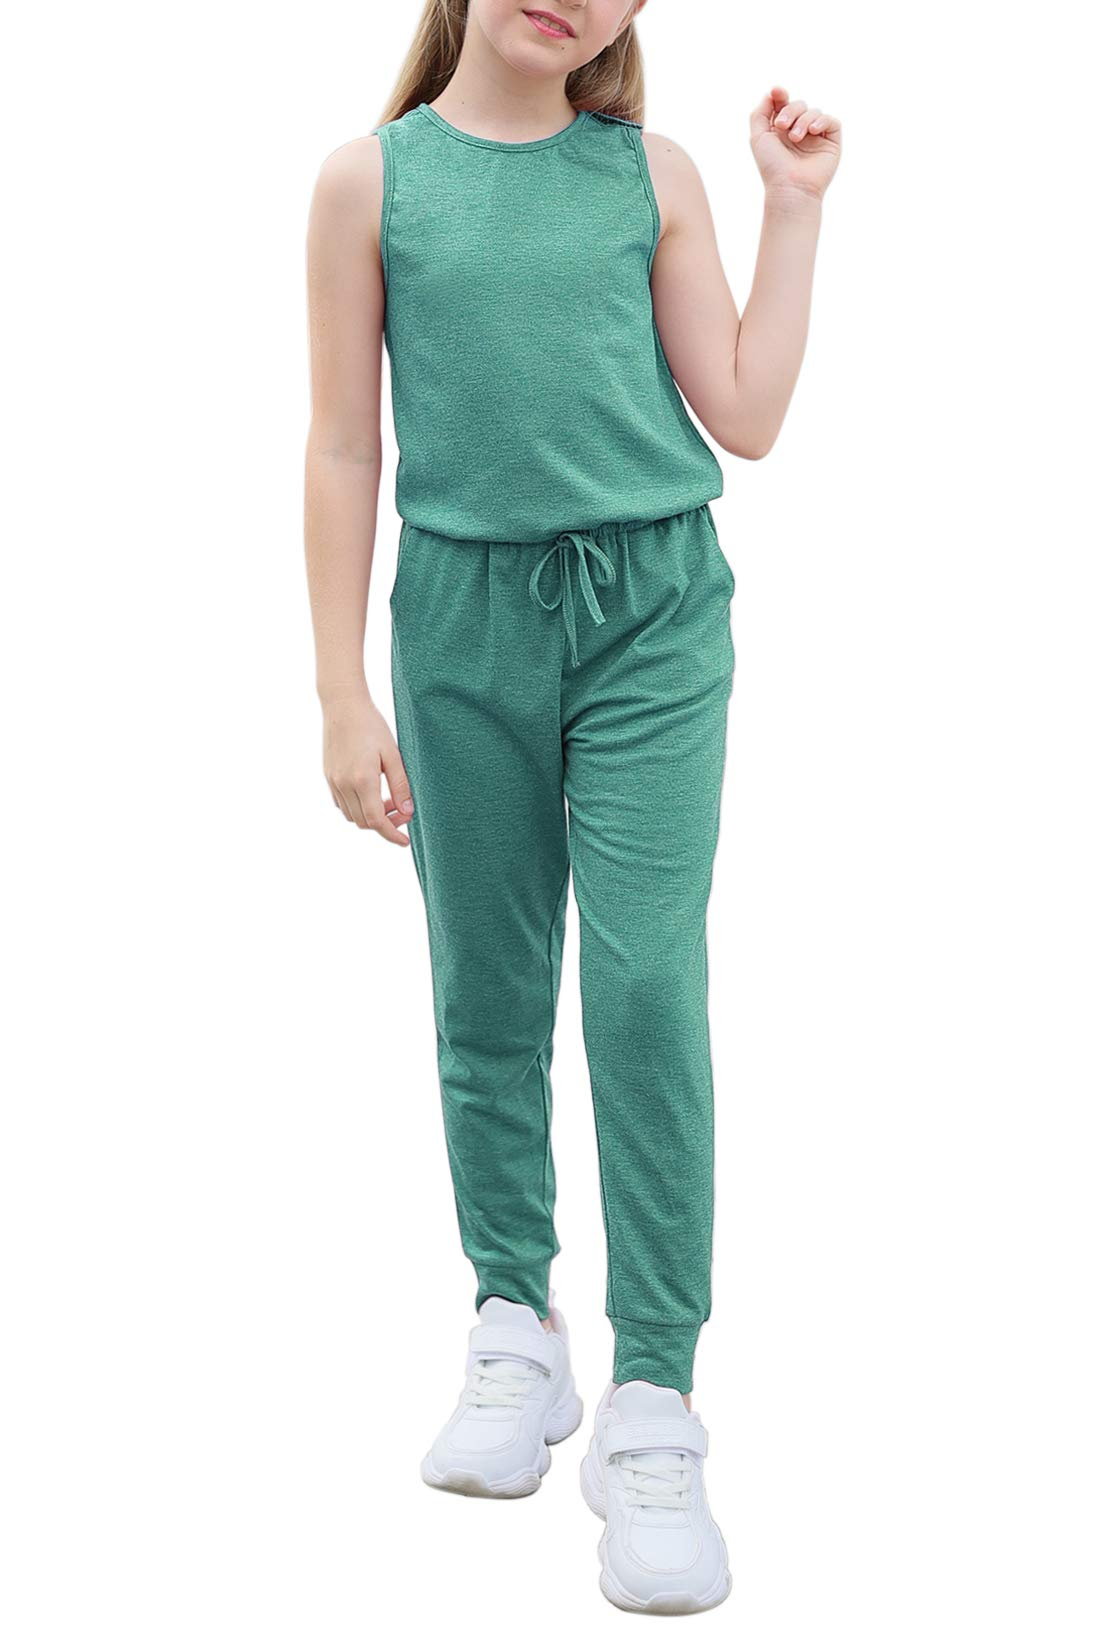 GORLYA Girl's Sleeveless Solid Casual Jumpsuit Rompers Harem Pants Outfits for 4-14T